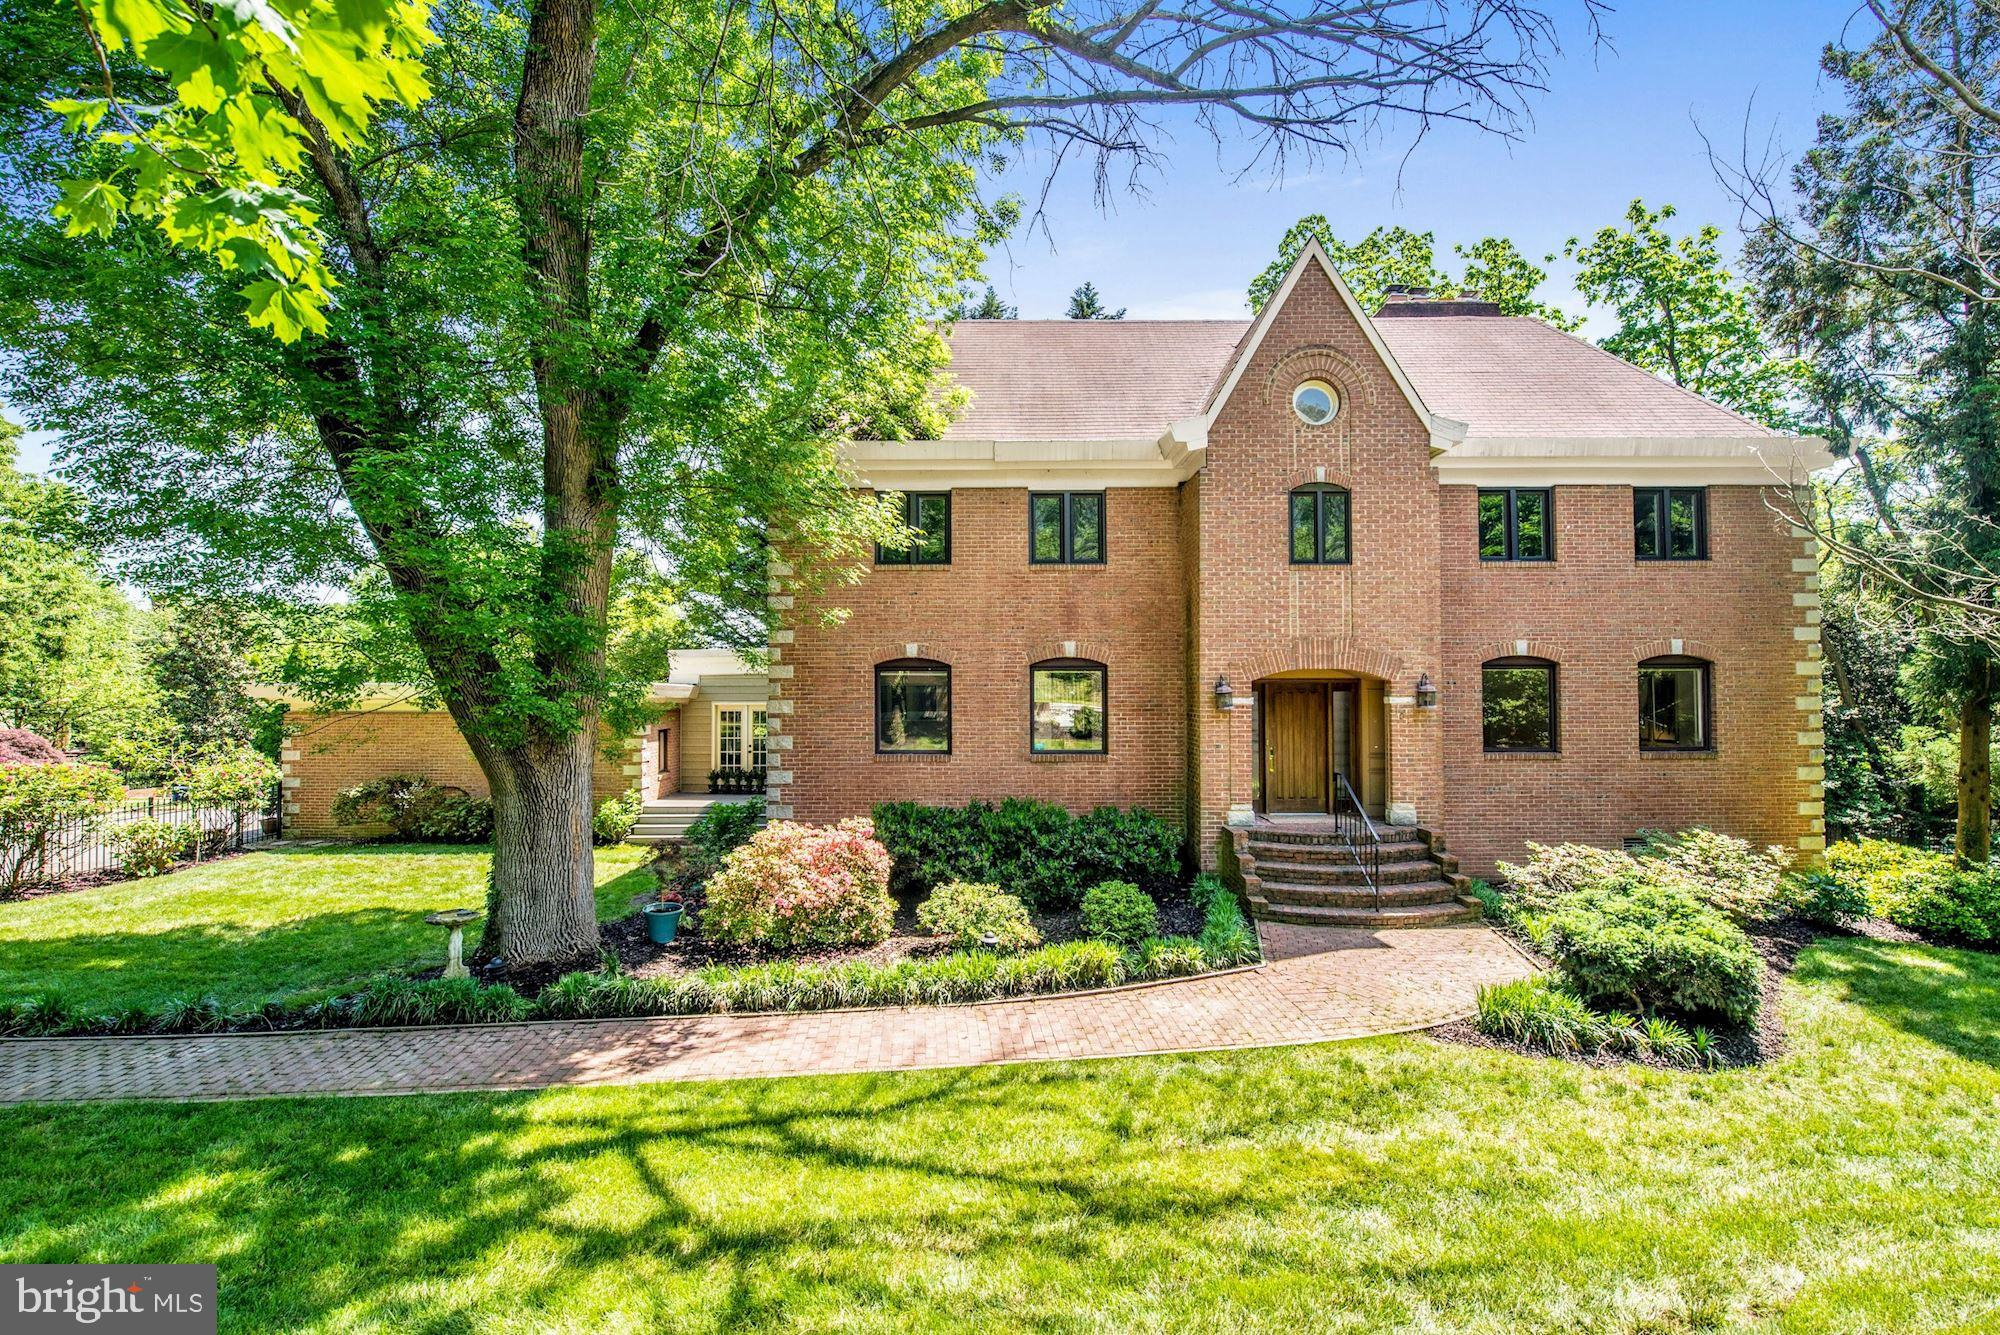 Fabulous brick colonial on nearly half-acre corner lot gated with lush landscaping and circular driveway. Over 5,000 SF of refined living space w/ 5 BR, 4.5 BA, 5 Fireplaces, hardwood floors, high-end appliances, granite kitchen, Master Suite w/ 2-way fireplace, skylight; 2-car garage, finished walk-out lower level, and more! *First photo is rendering with center window added* Convenient location inside the Beltway just moments to King Street, Metro, and Old Town!